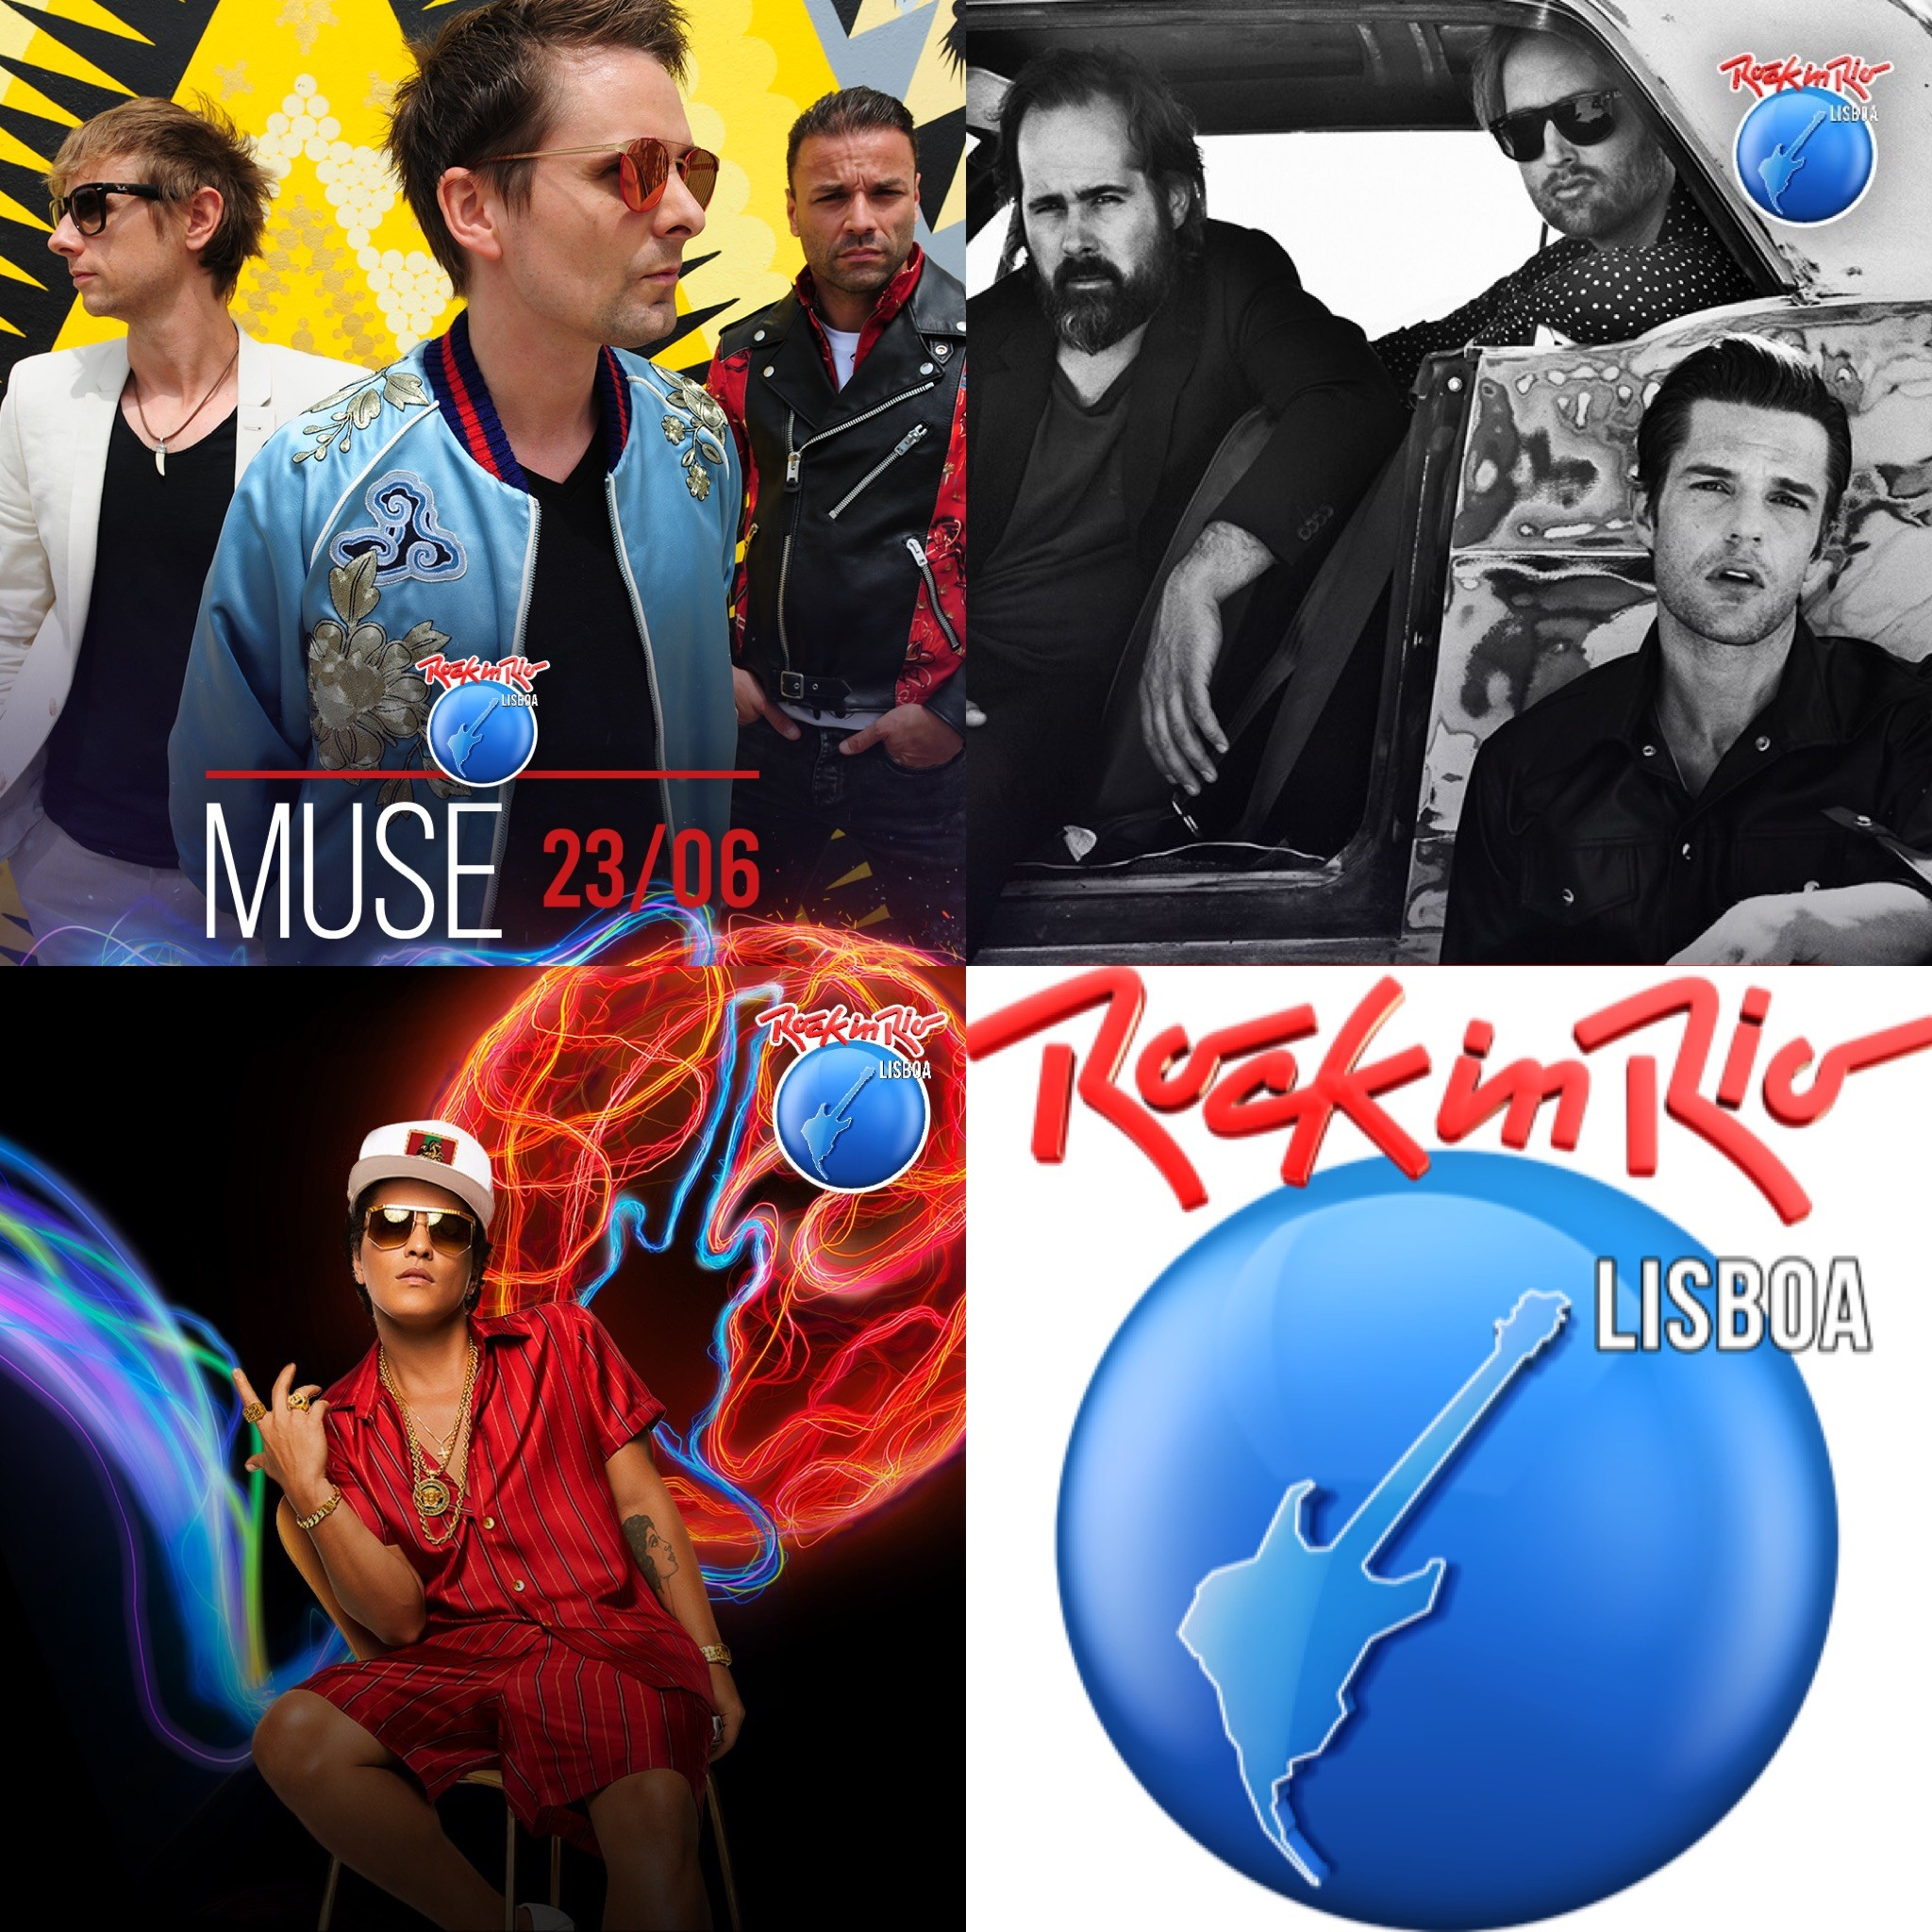 ROCK IN RIO LISBOA 2018 (Bruno Mars, Muse, The Killers, The Chemical Brothers)